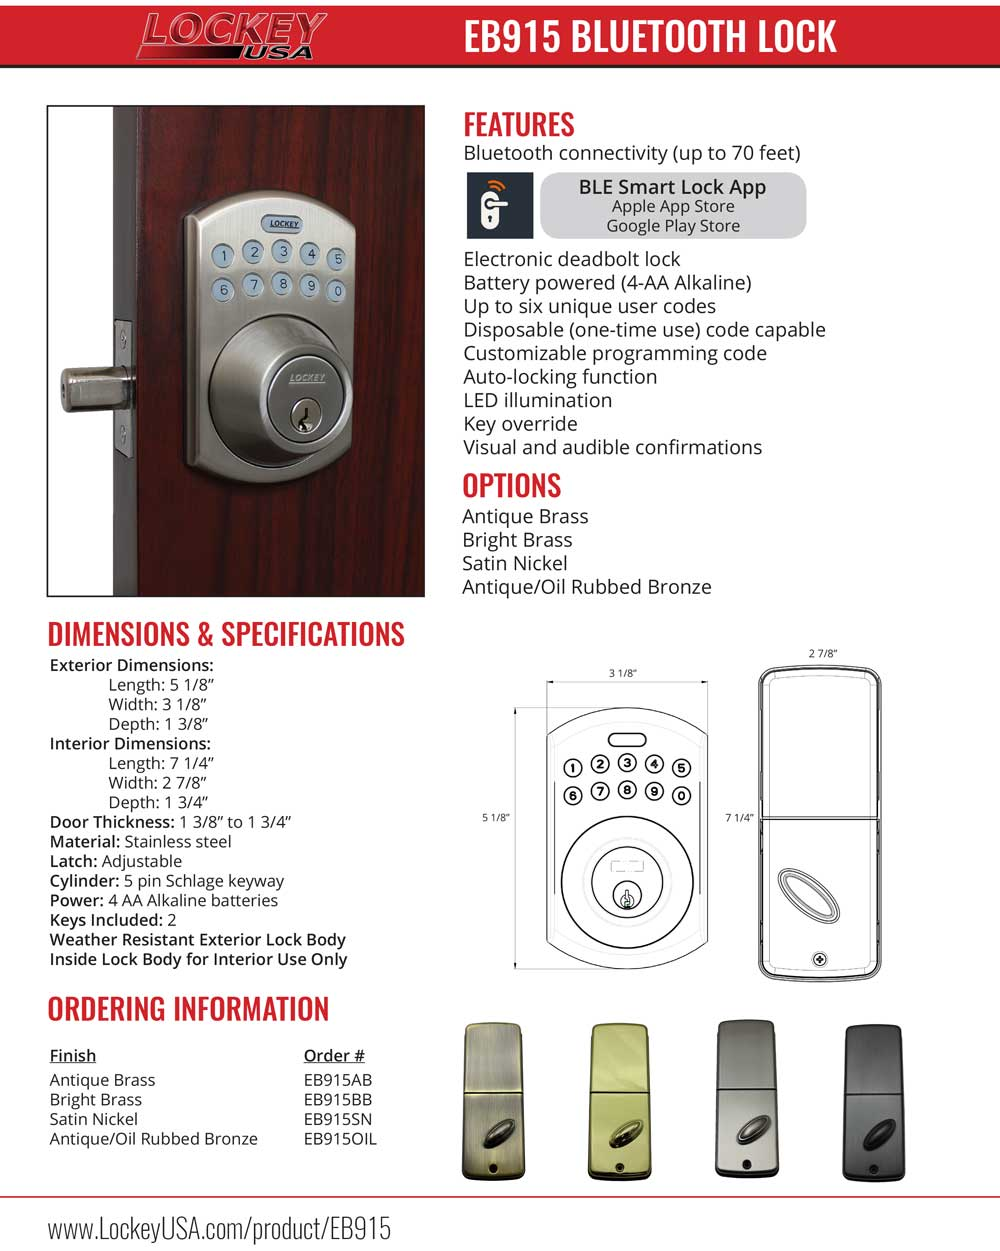 Lockey EB915 Electronic Bluetooth Deadbolt Lock